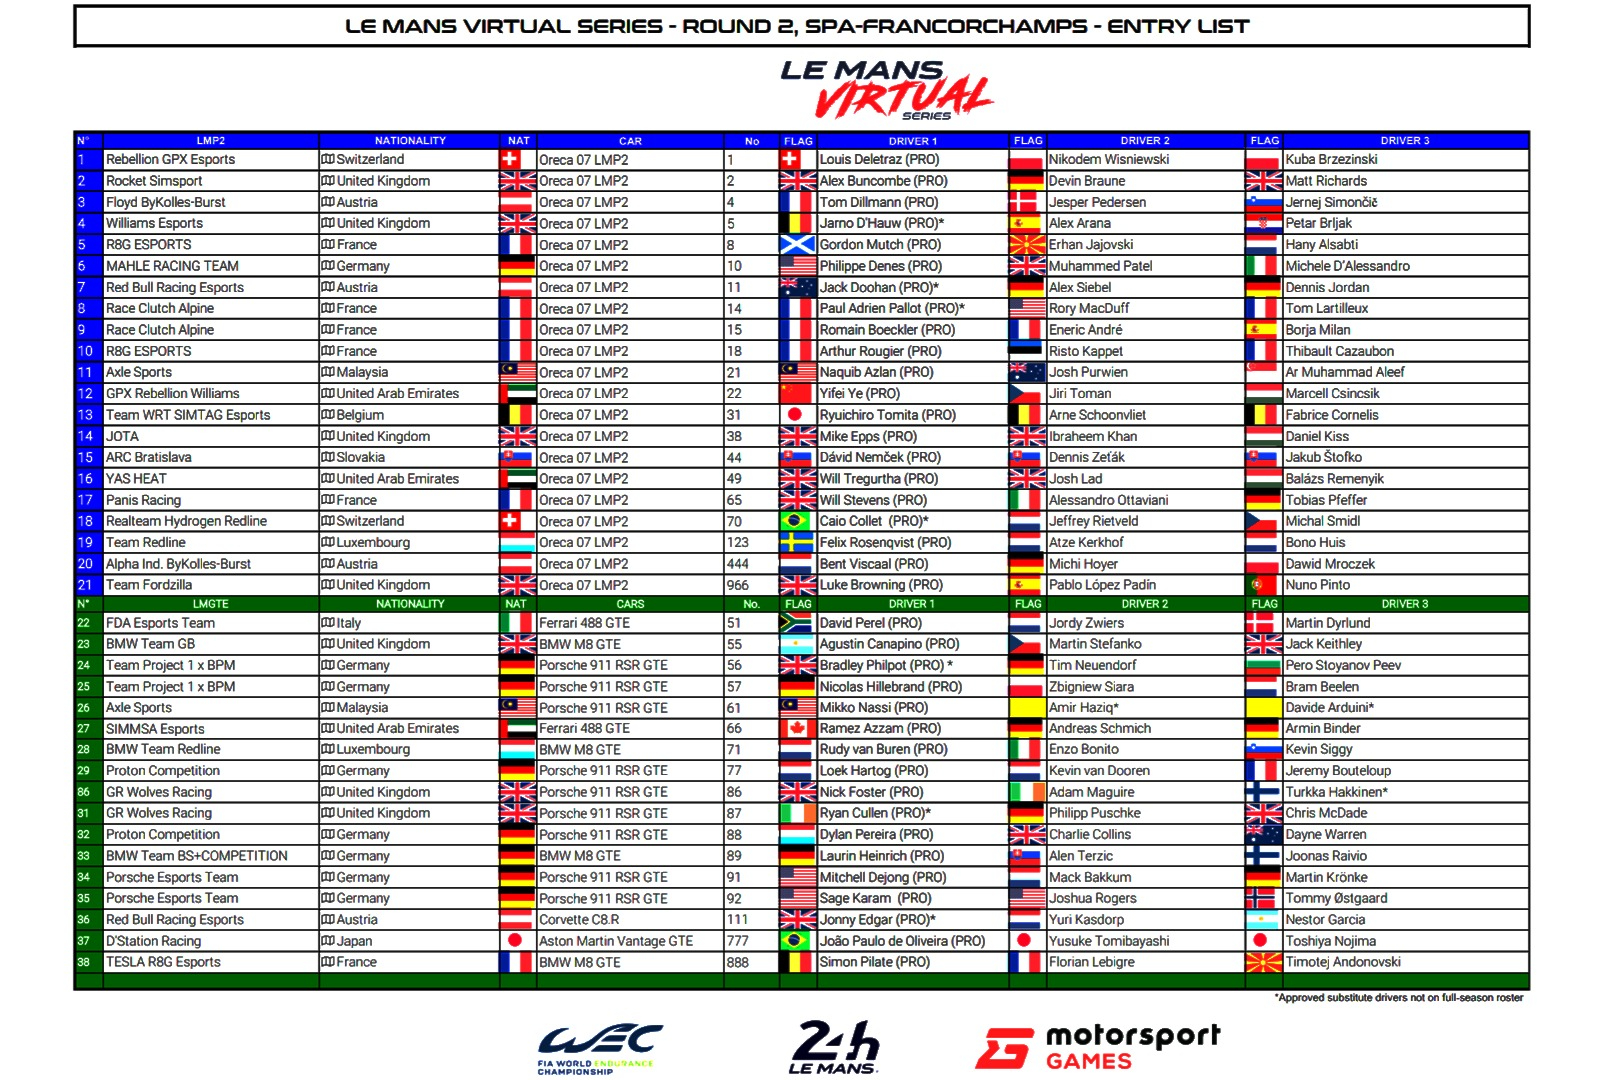 Le Mans Digital Collection Race 2 at Spa-Francorchamps entry record unveiled - Motor Informed